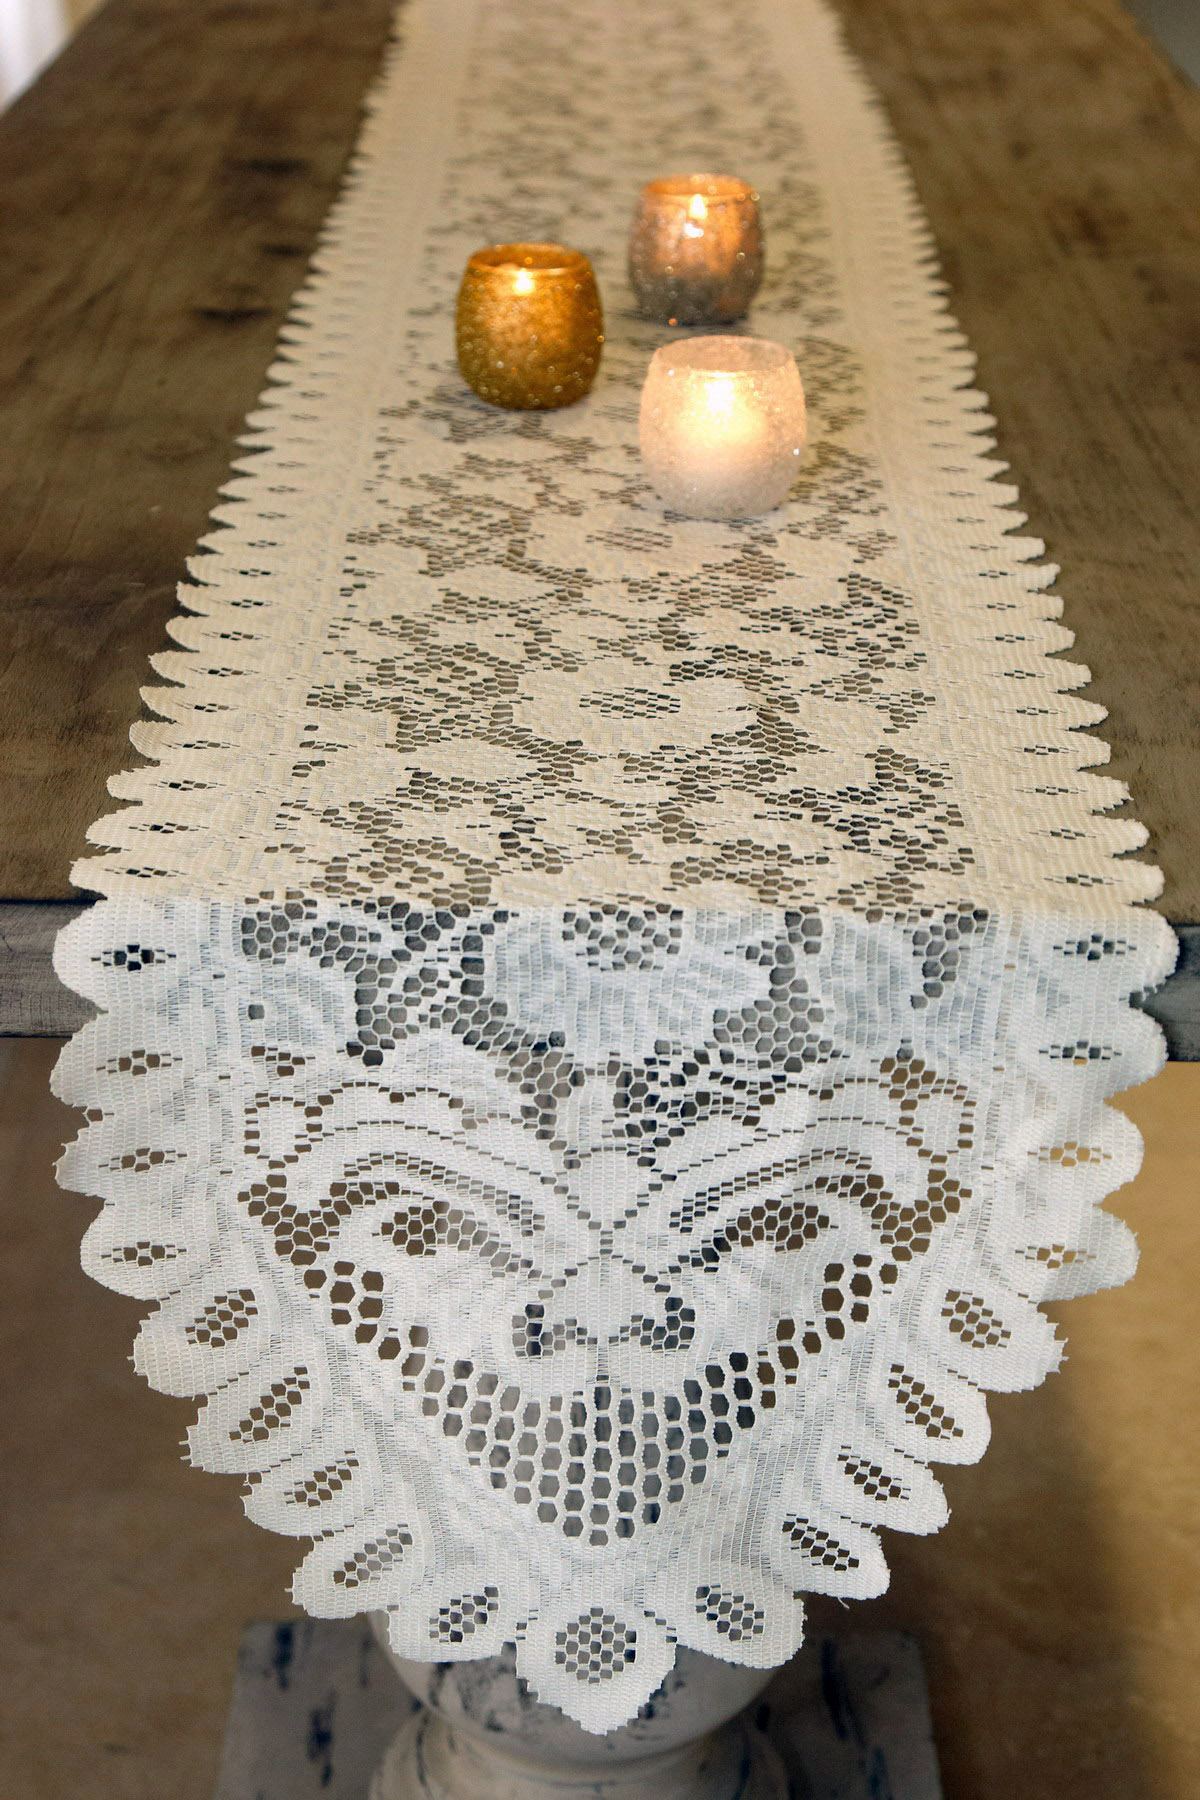 Woven Table Runner | Lace Table Runners | Decorative Table Runners